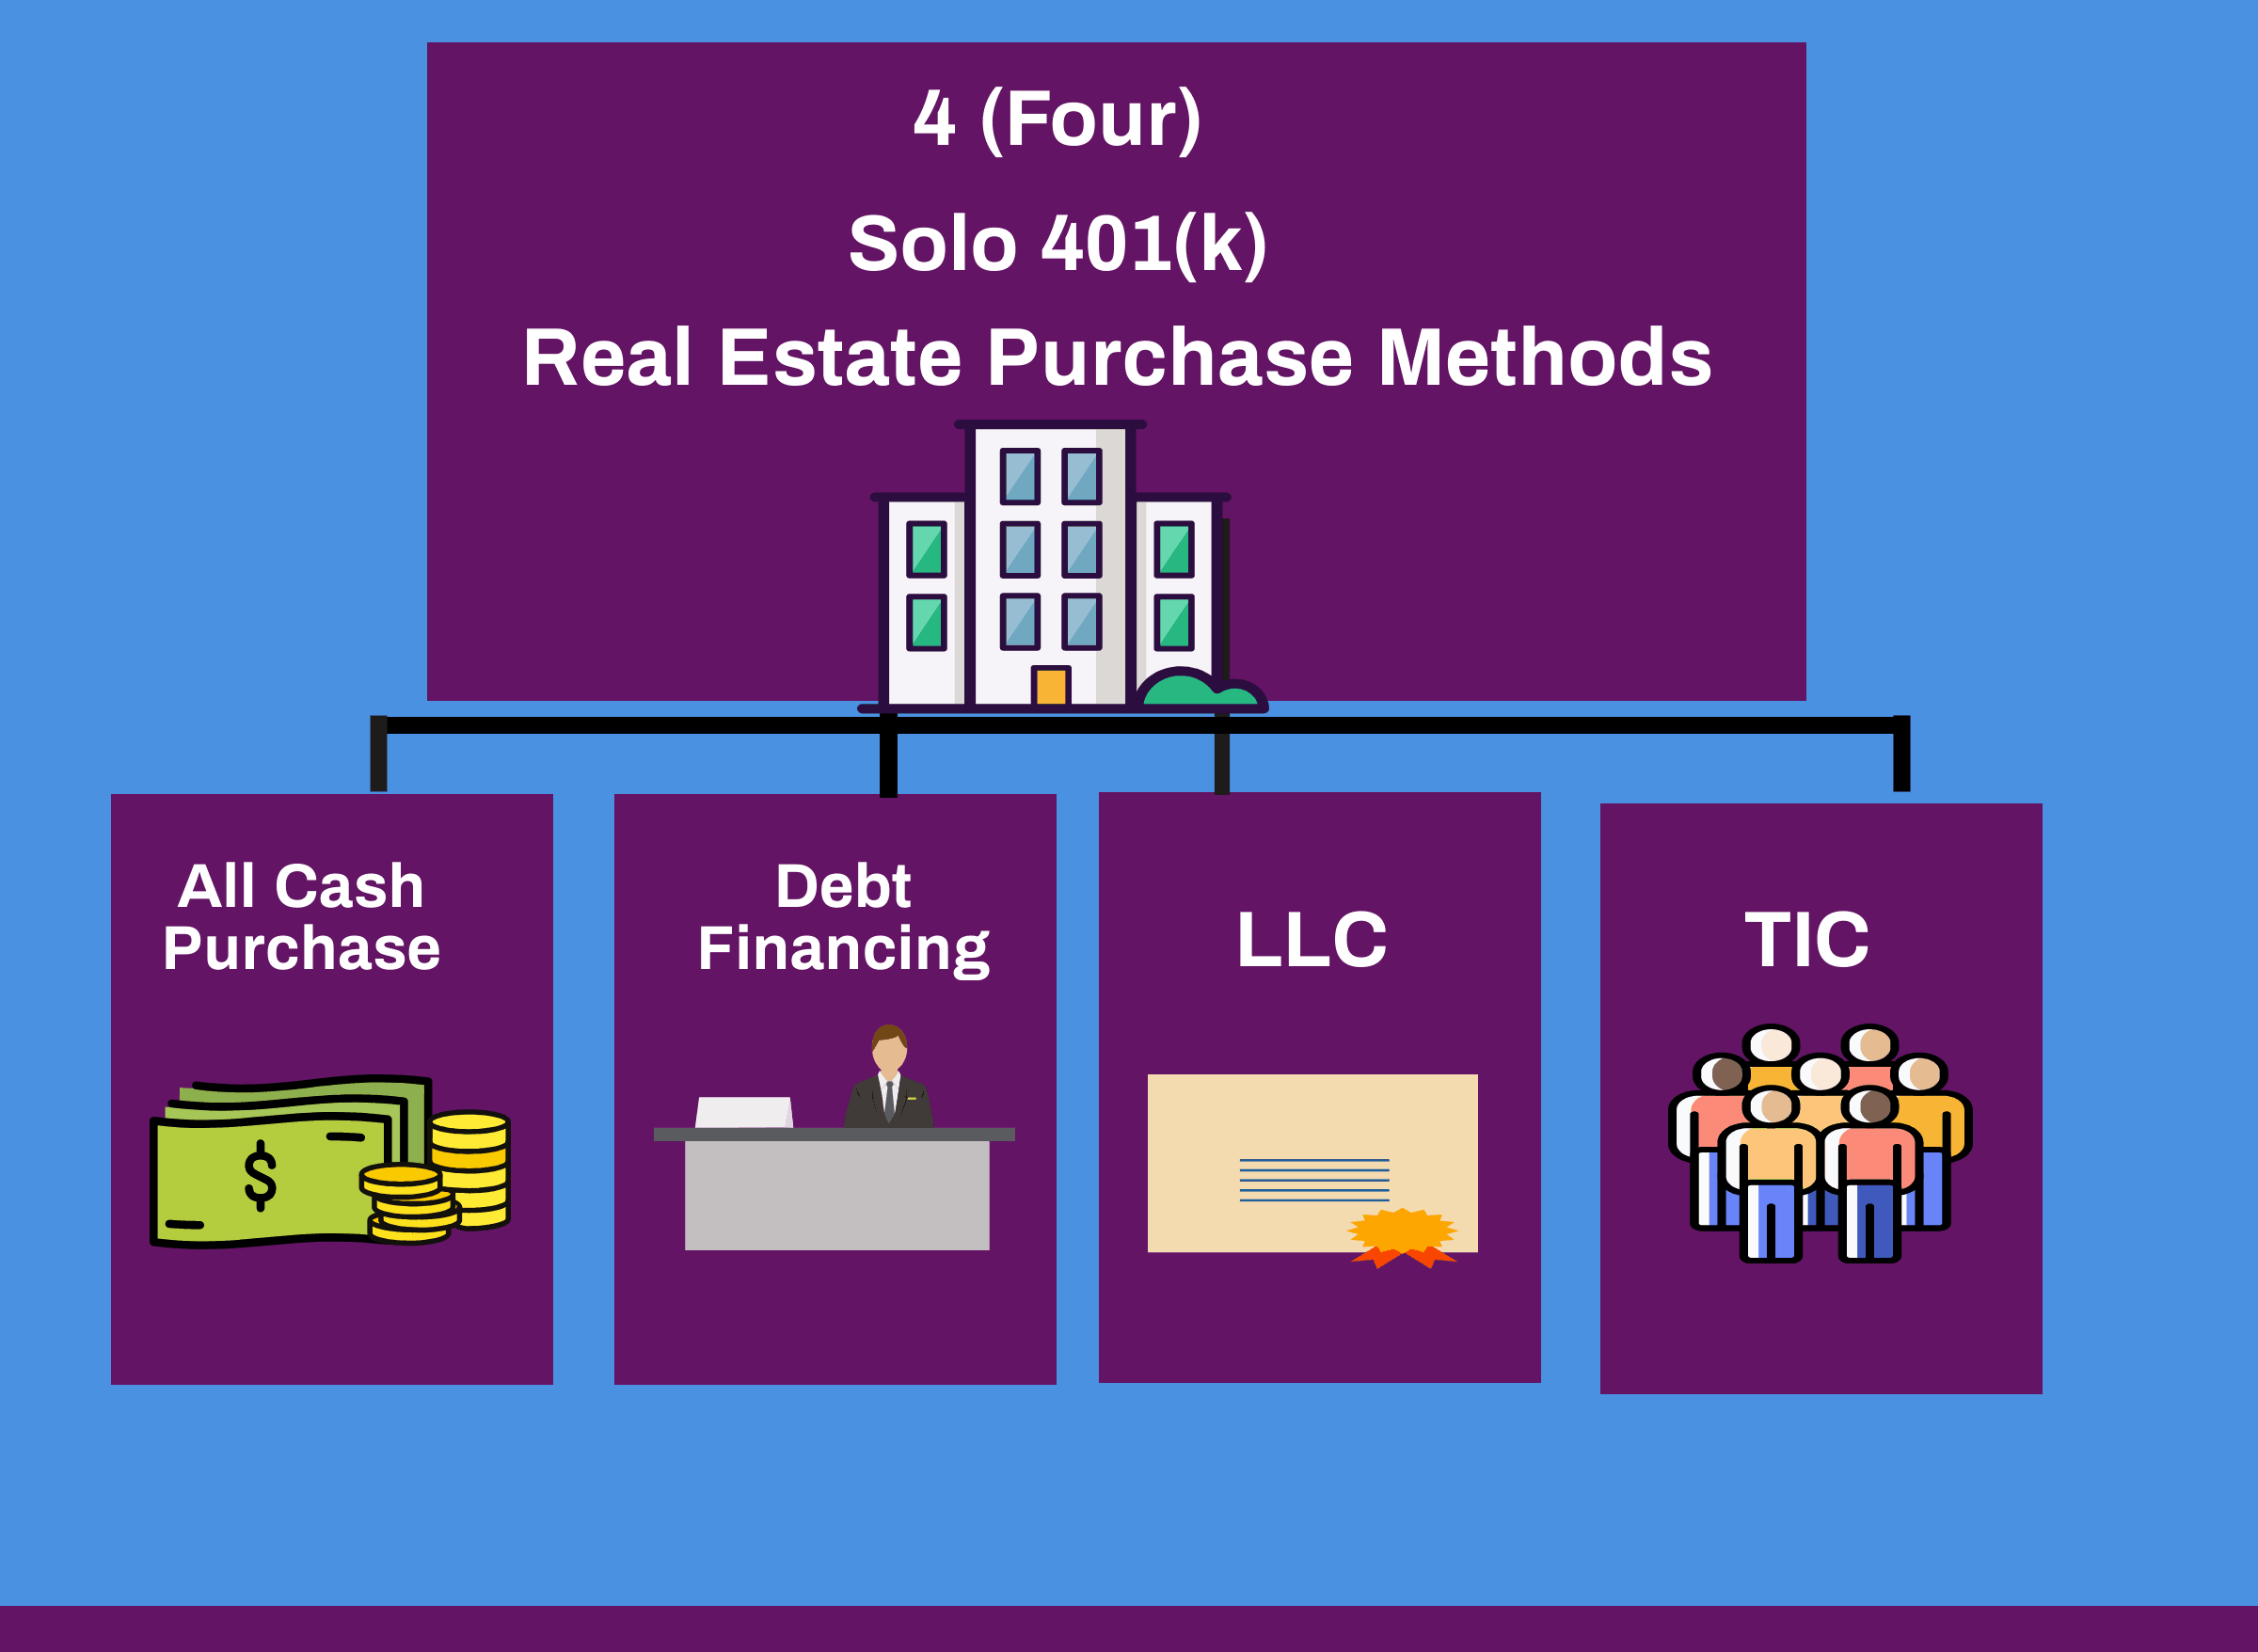 Ways to invest in real estate using a solo 401k